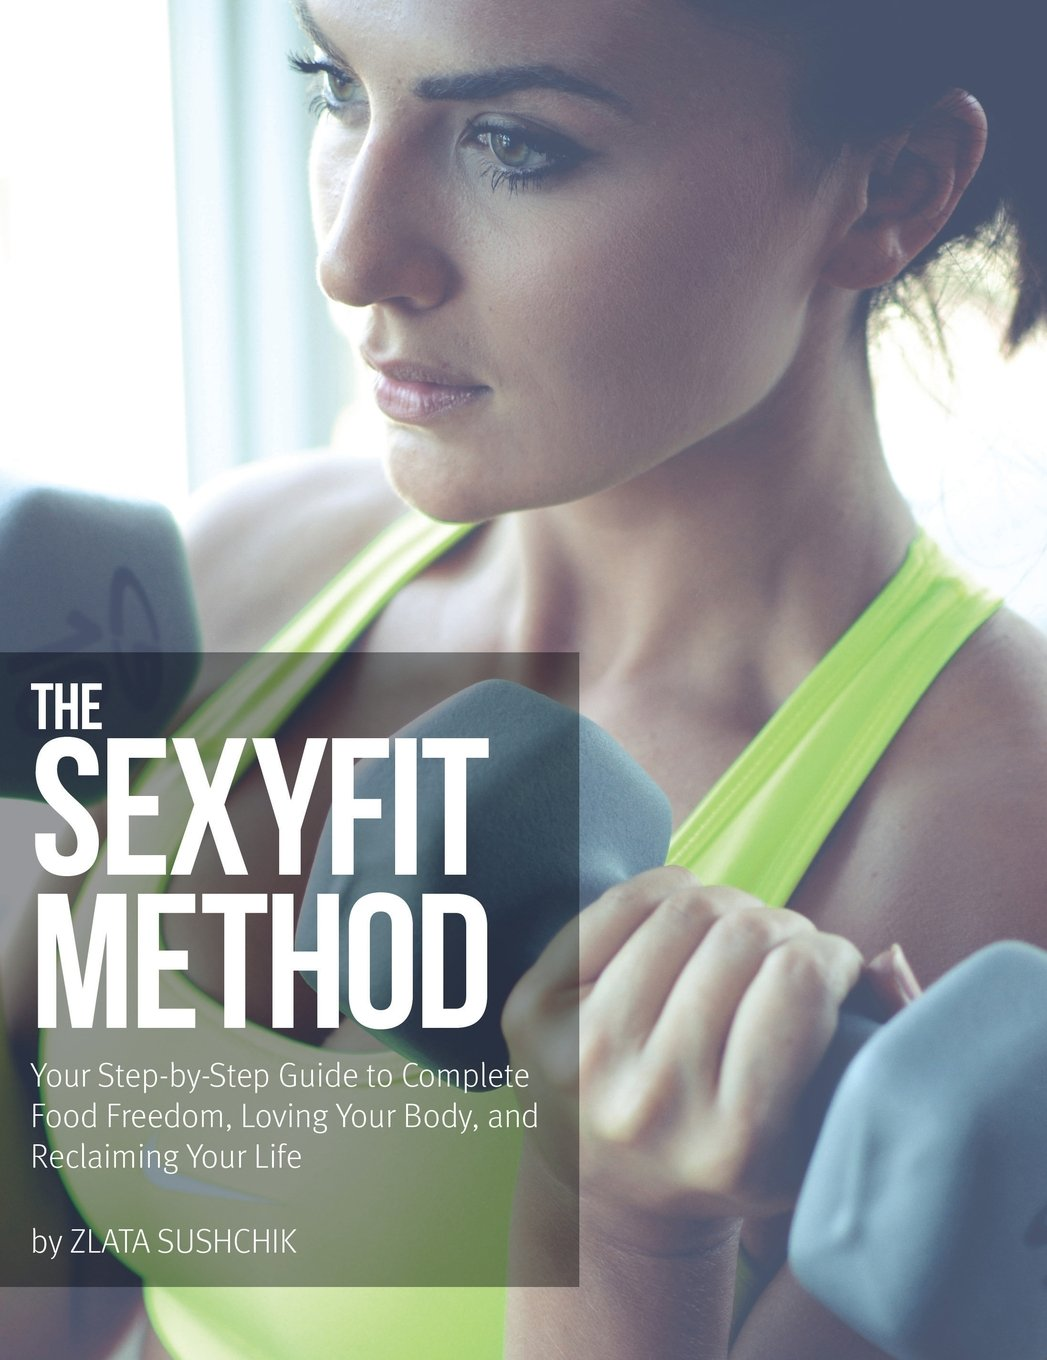 Download The Sexyfit Method: Your Step-by-Step Guide to Complete Food Freedom, Loving Your Body, and Reclaiming Your life (978-0-9985372-3-8) pdf